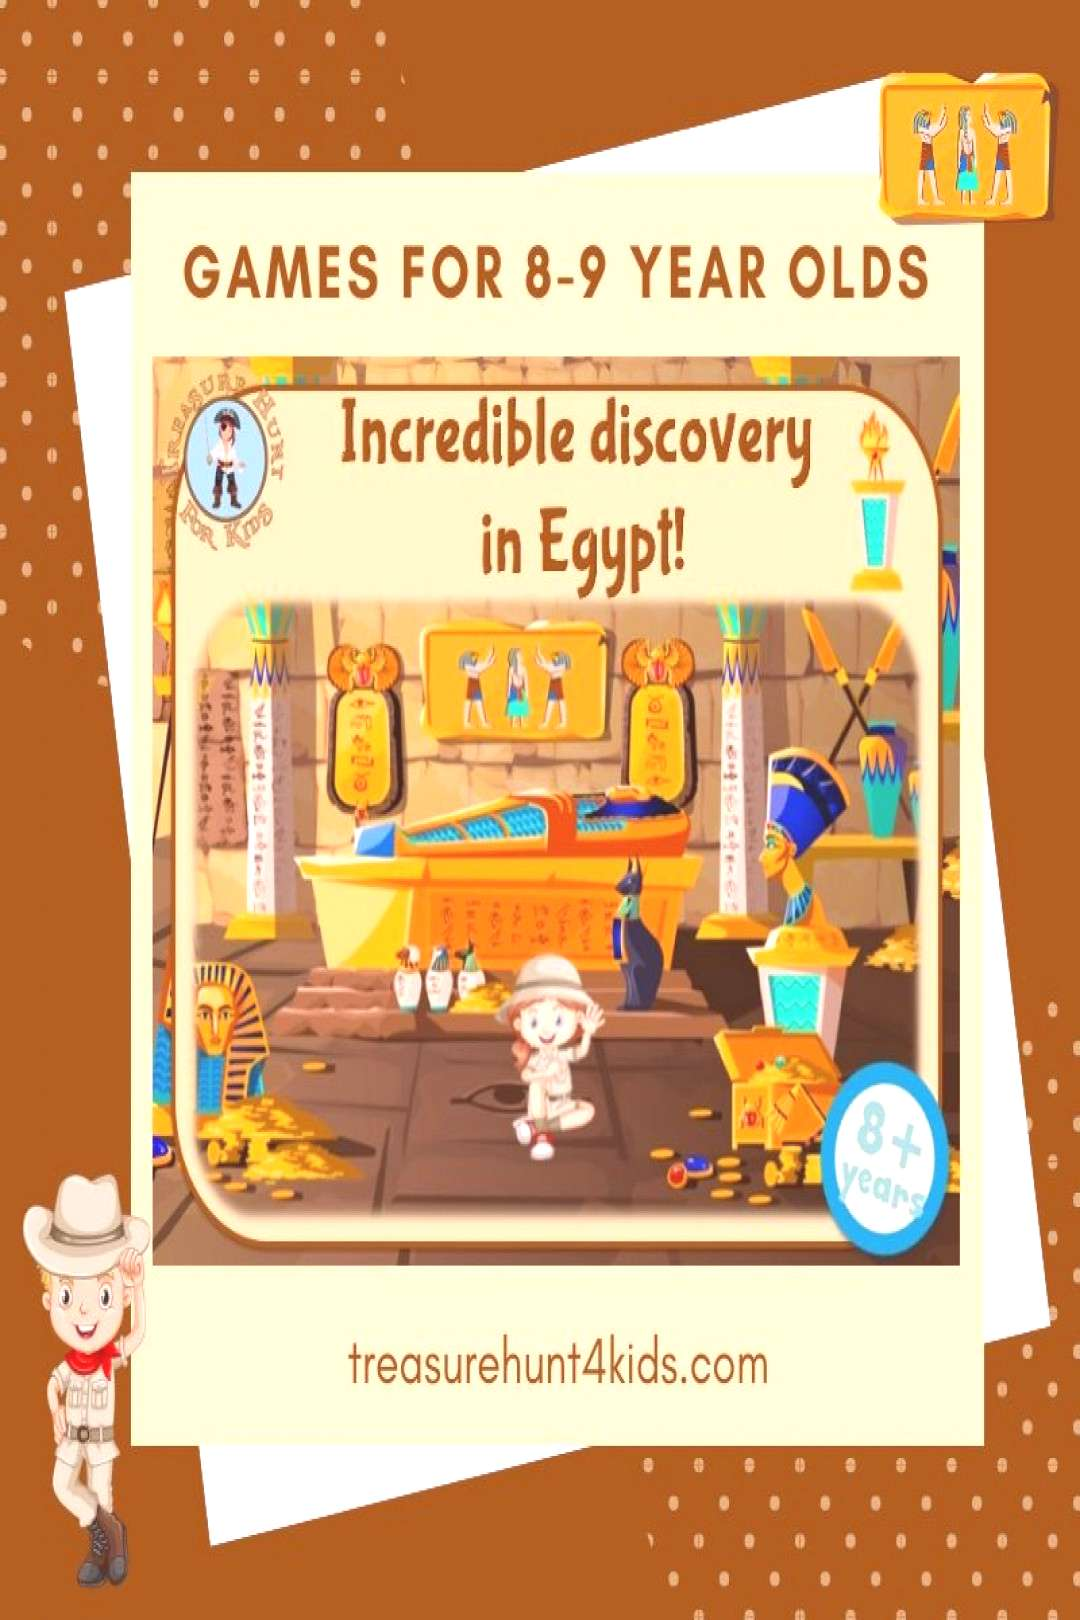 Print and play Egypt treasure hunt game for kids aged 8-9 years to play at home